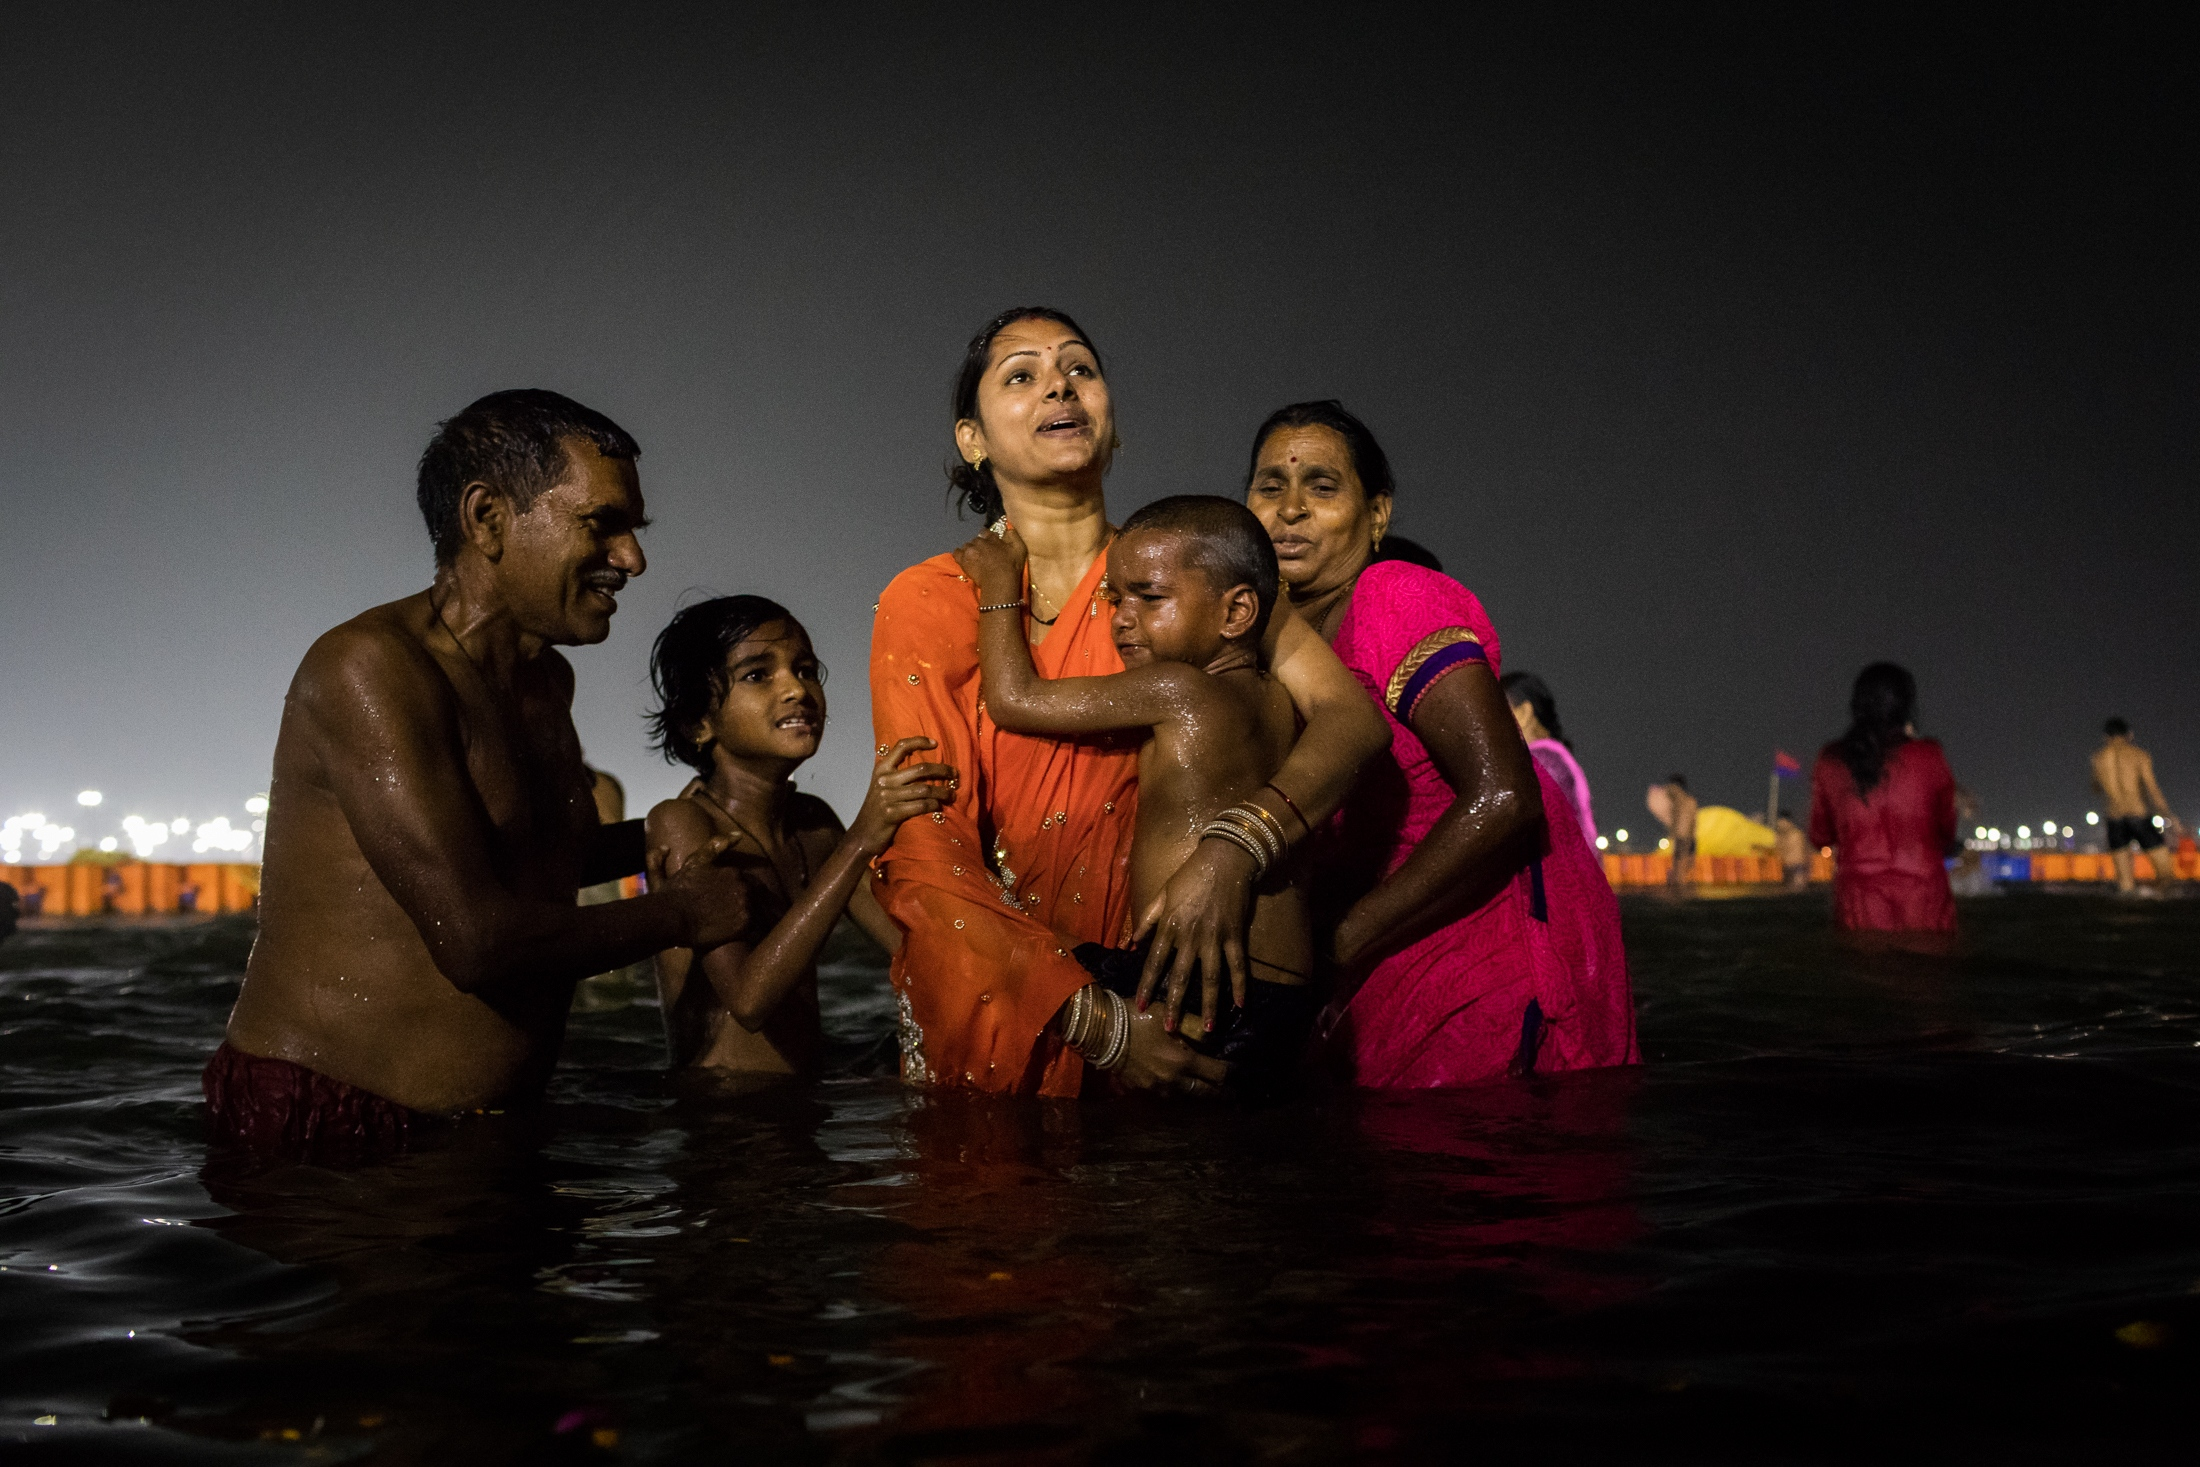 A child surrounded by his family has his first holy bath in a Kumbh Mela, Prayagraj, February 2019.